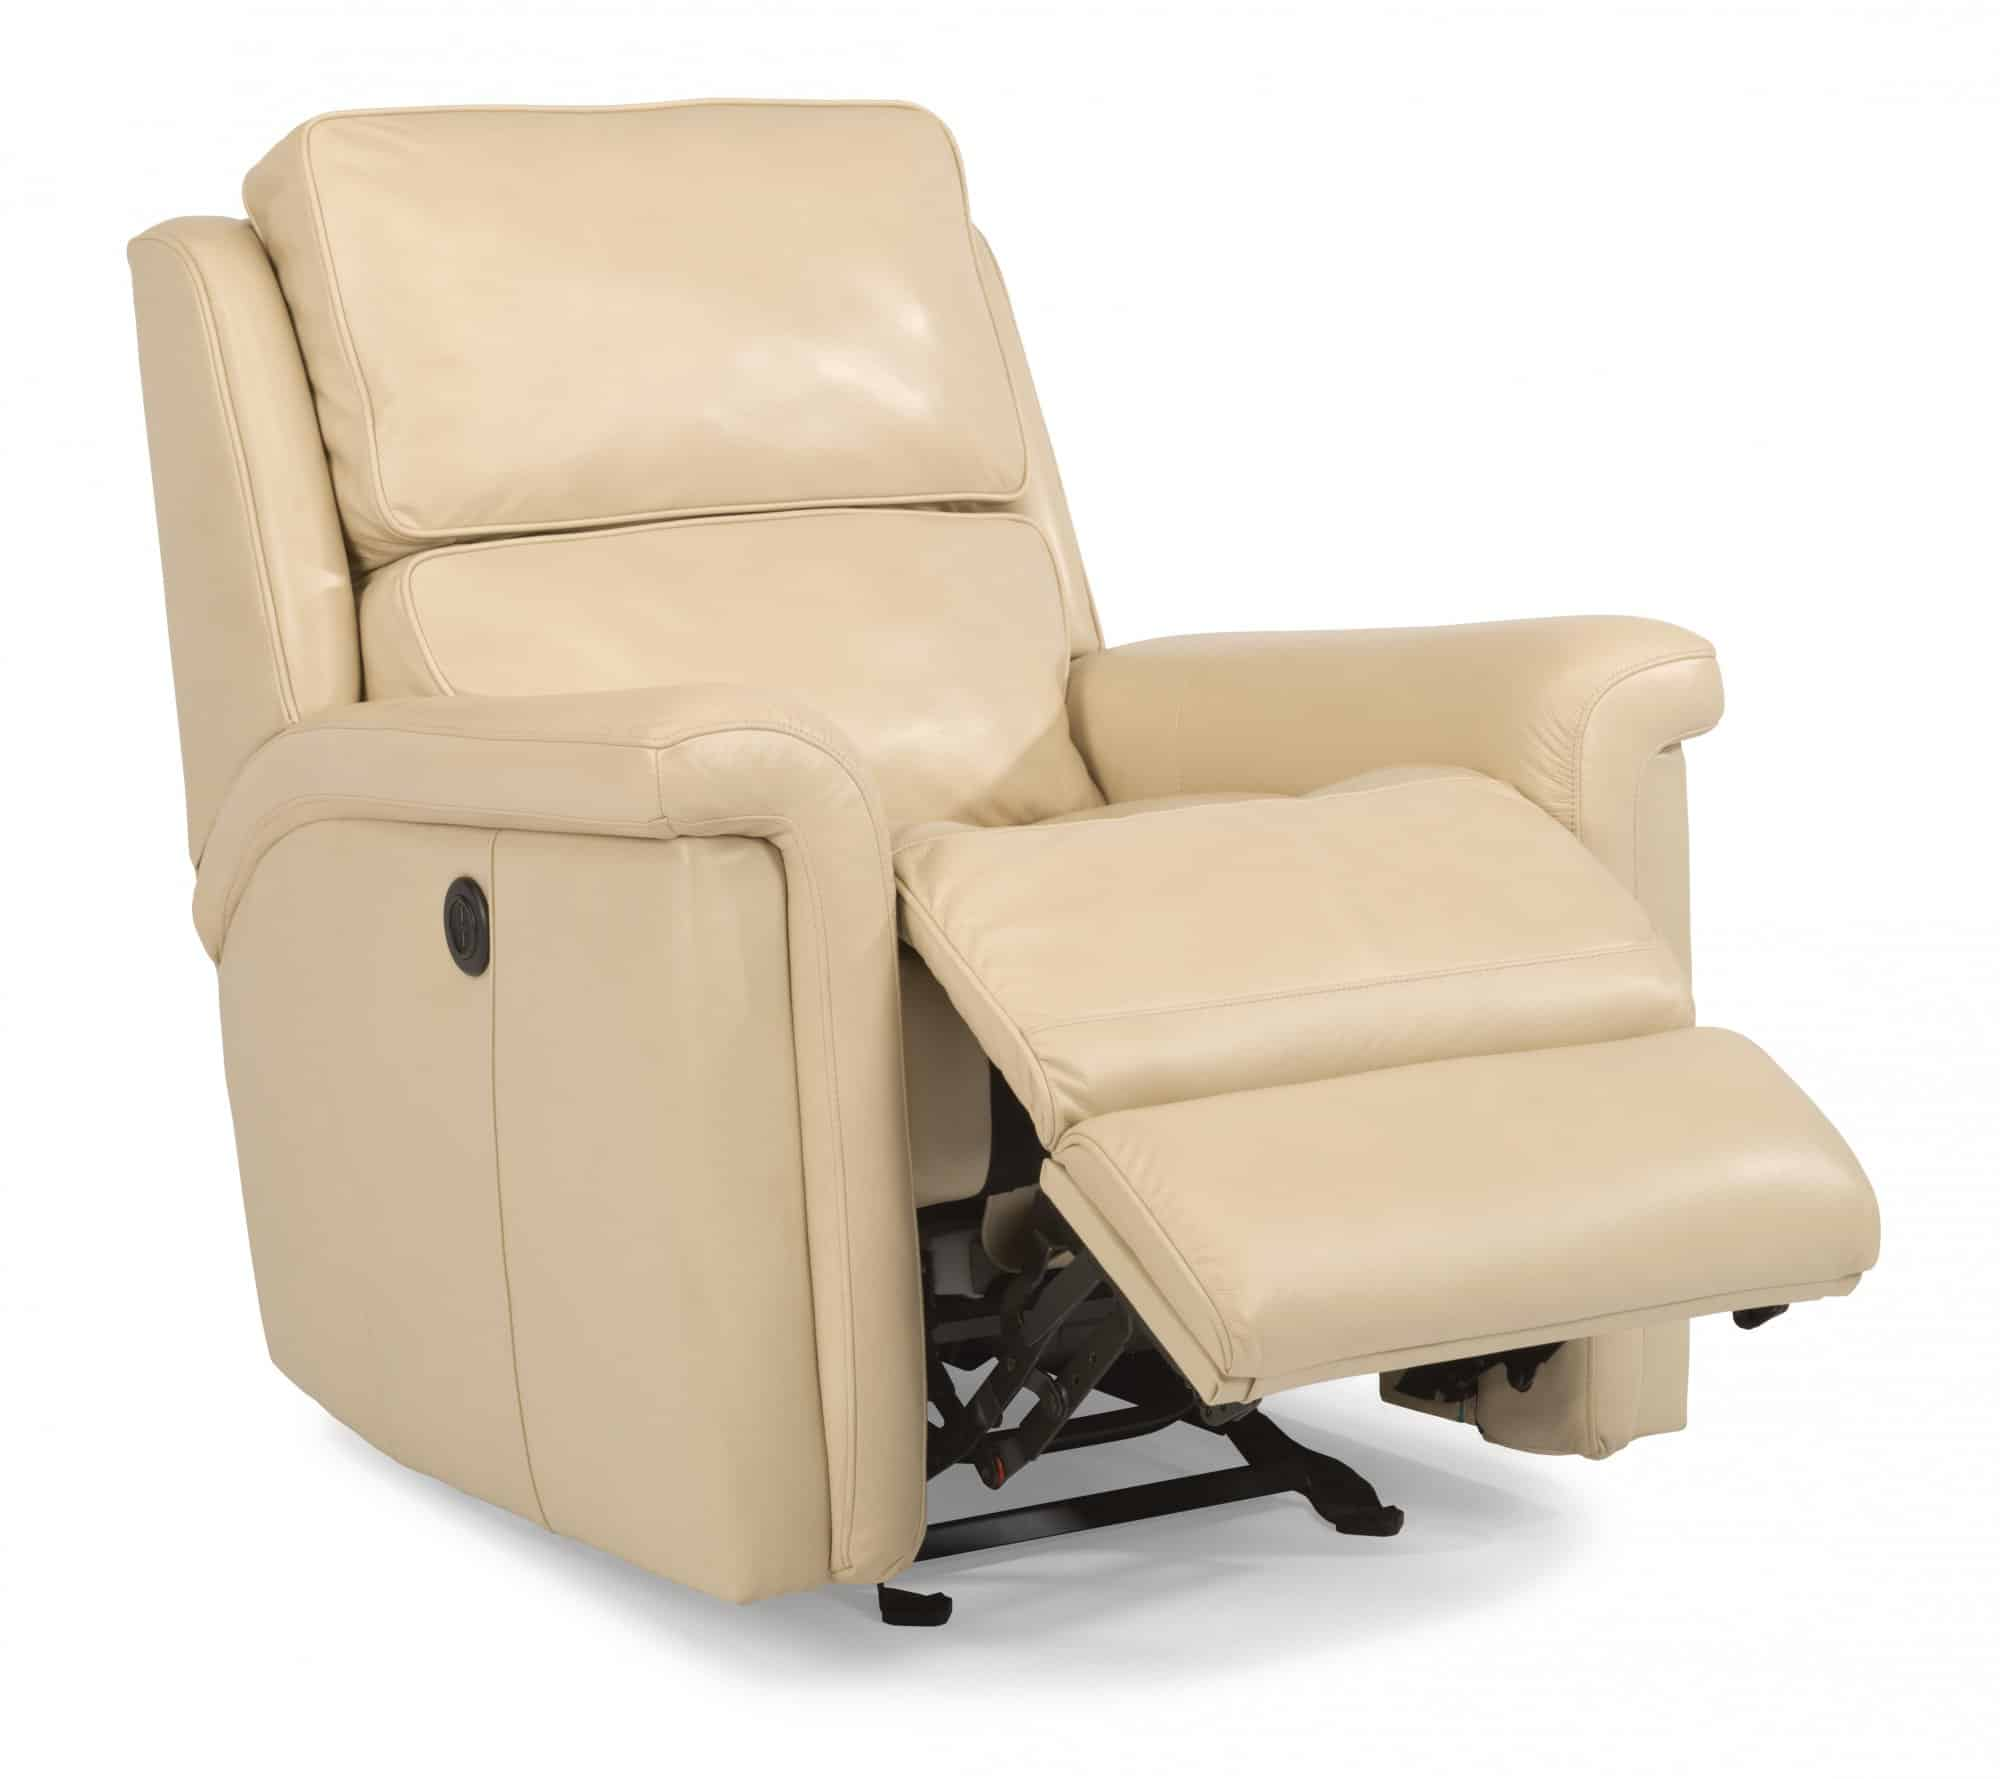 flexsteel chair prices ergonomic folding chairs best on recliners tosha leather or fabric